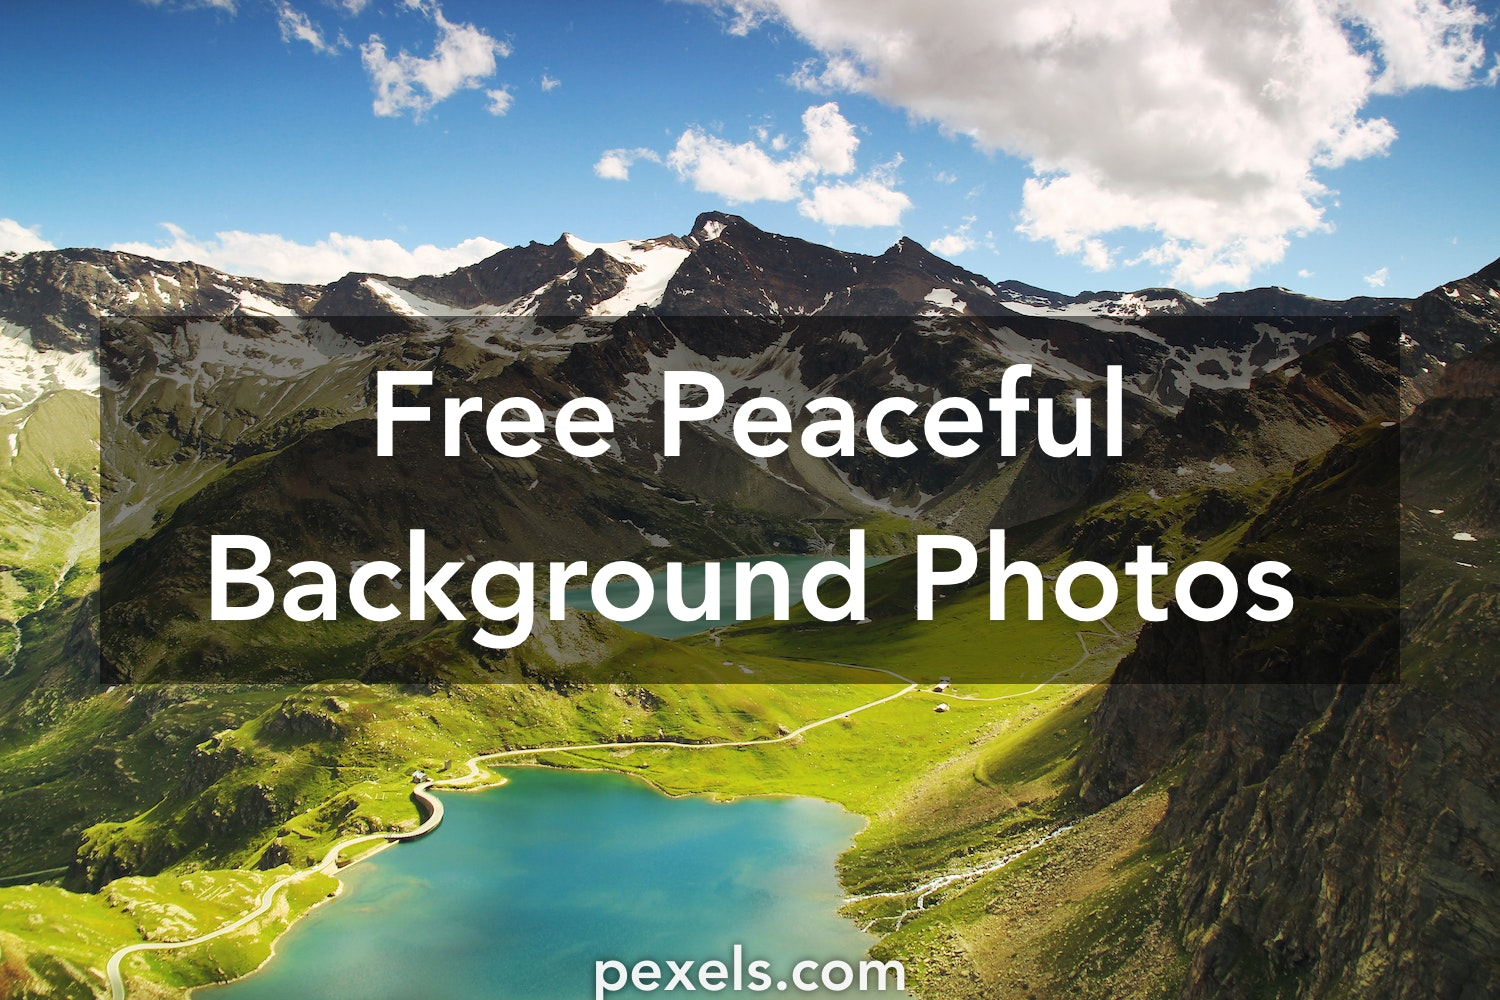 Free stock photos of peaceful background pexels - Peaceful background images ...